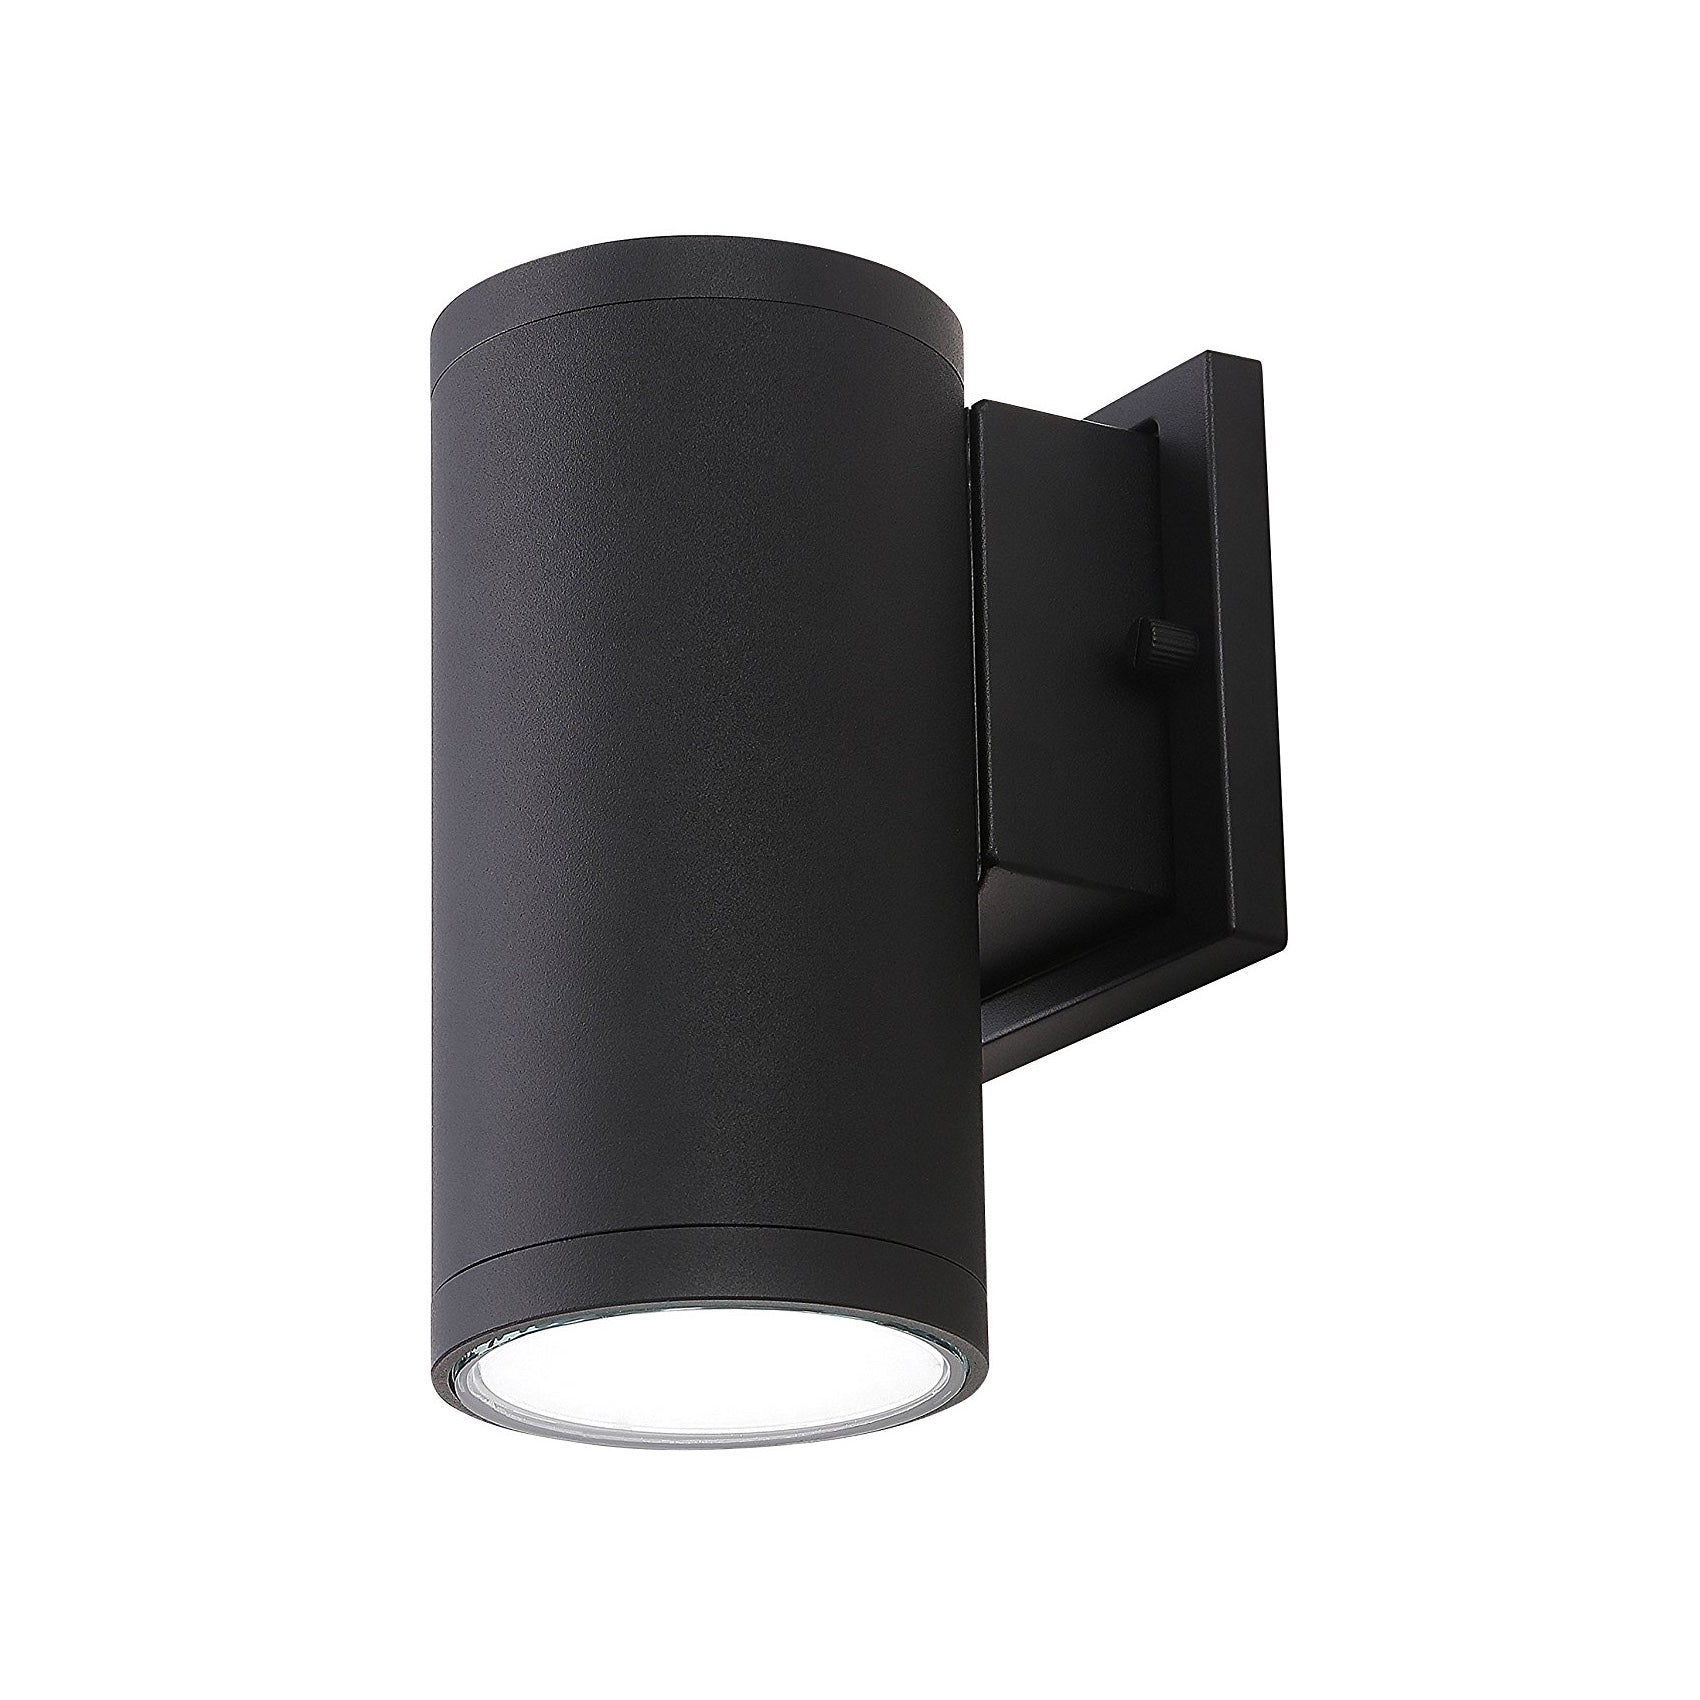 Cloudybay 4-inch 15W LED Outdoor Cylinder Porch Wall Light Black 5000K__title